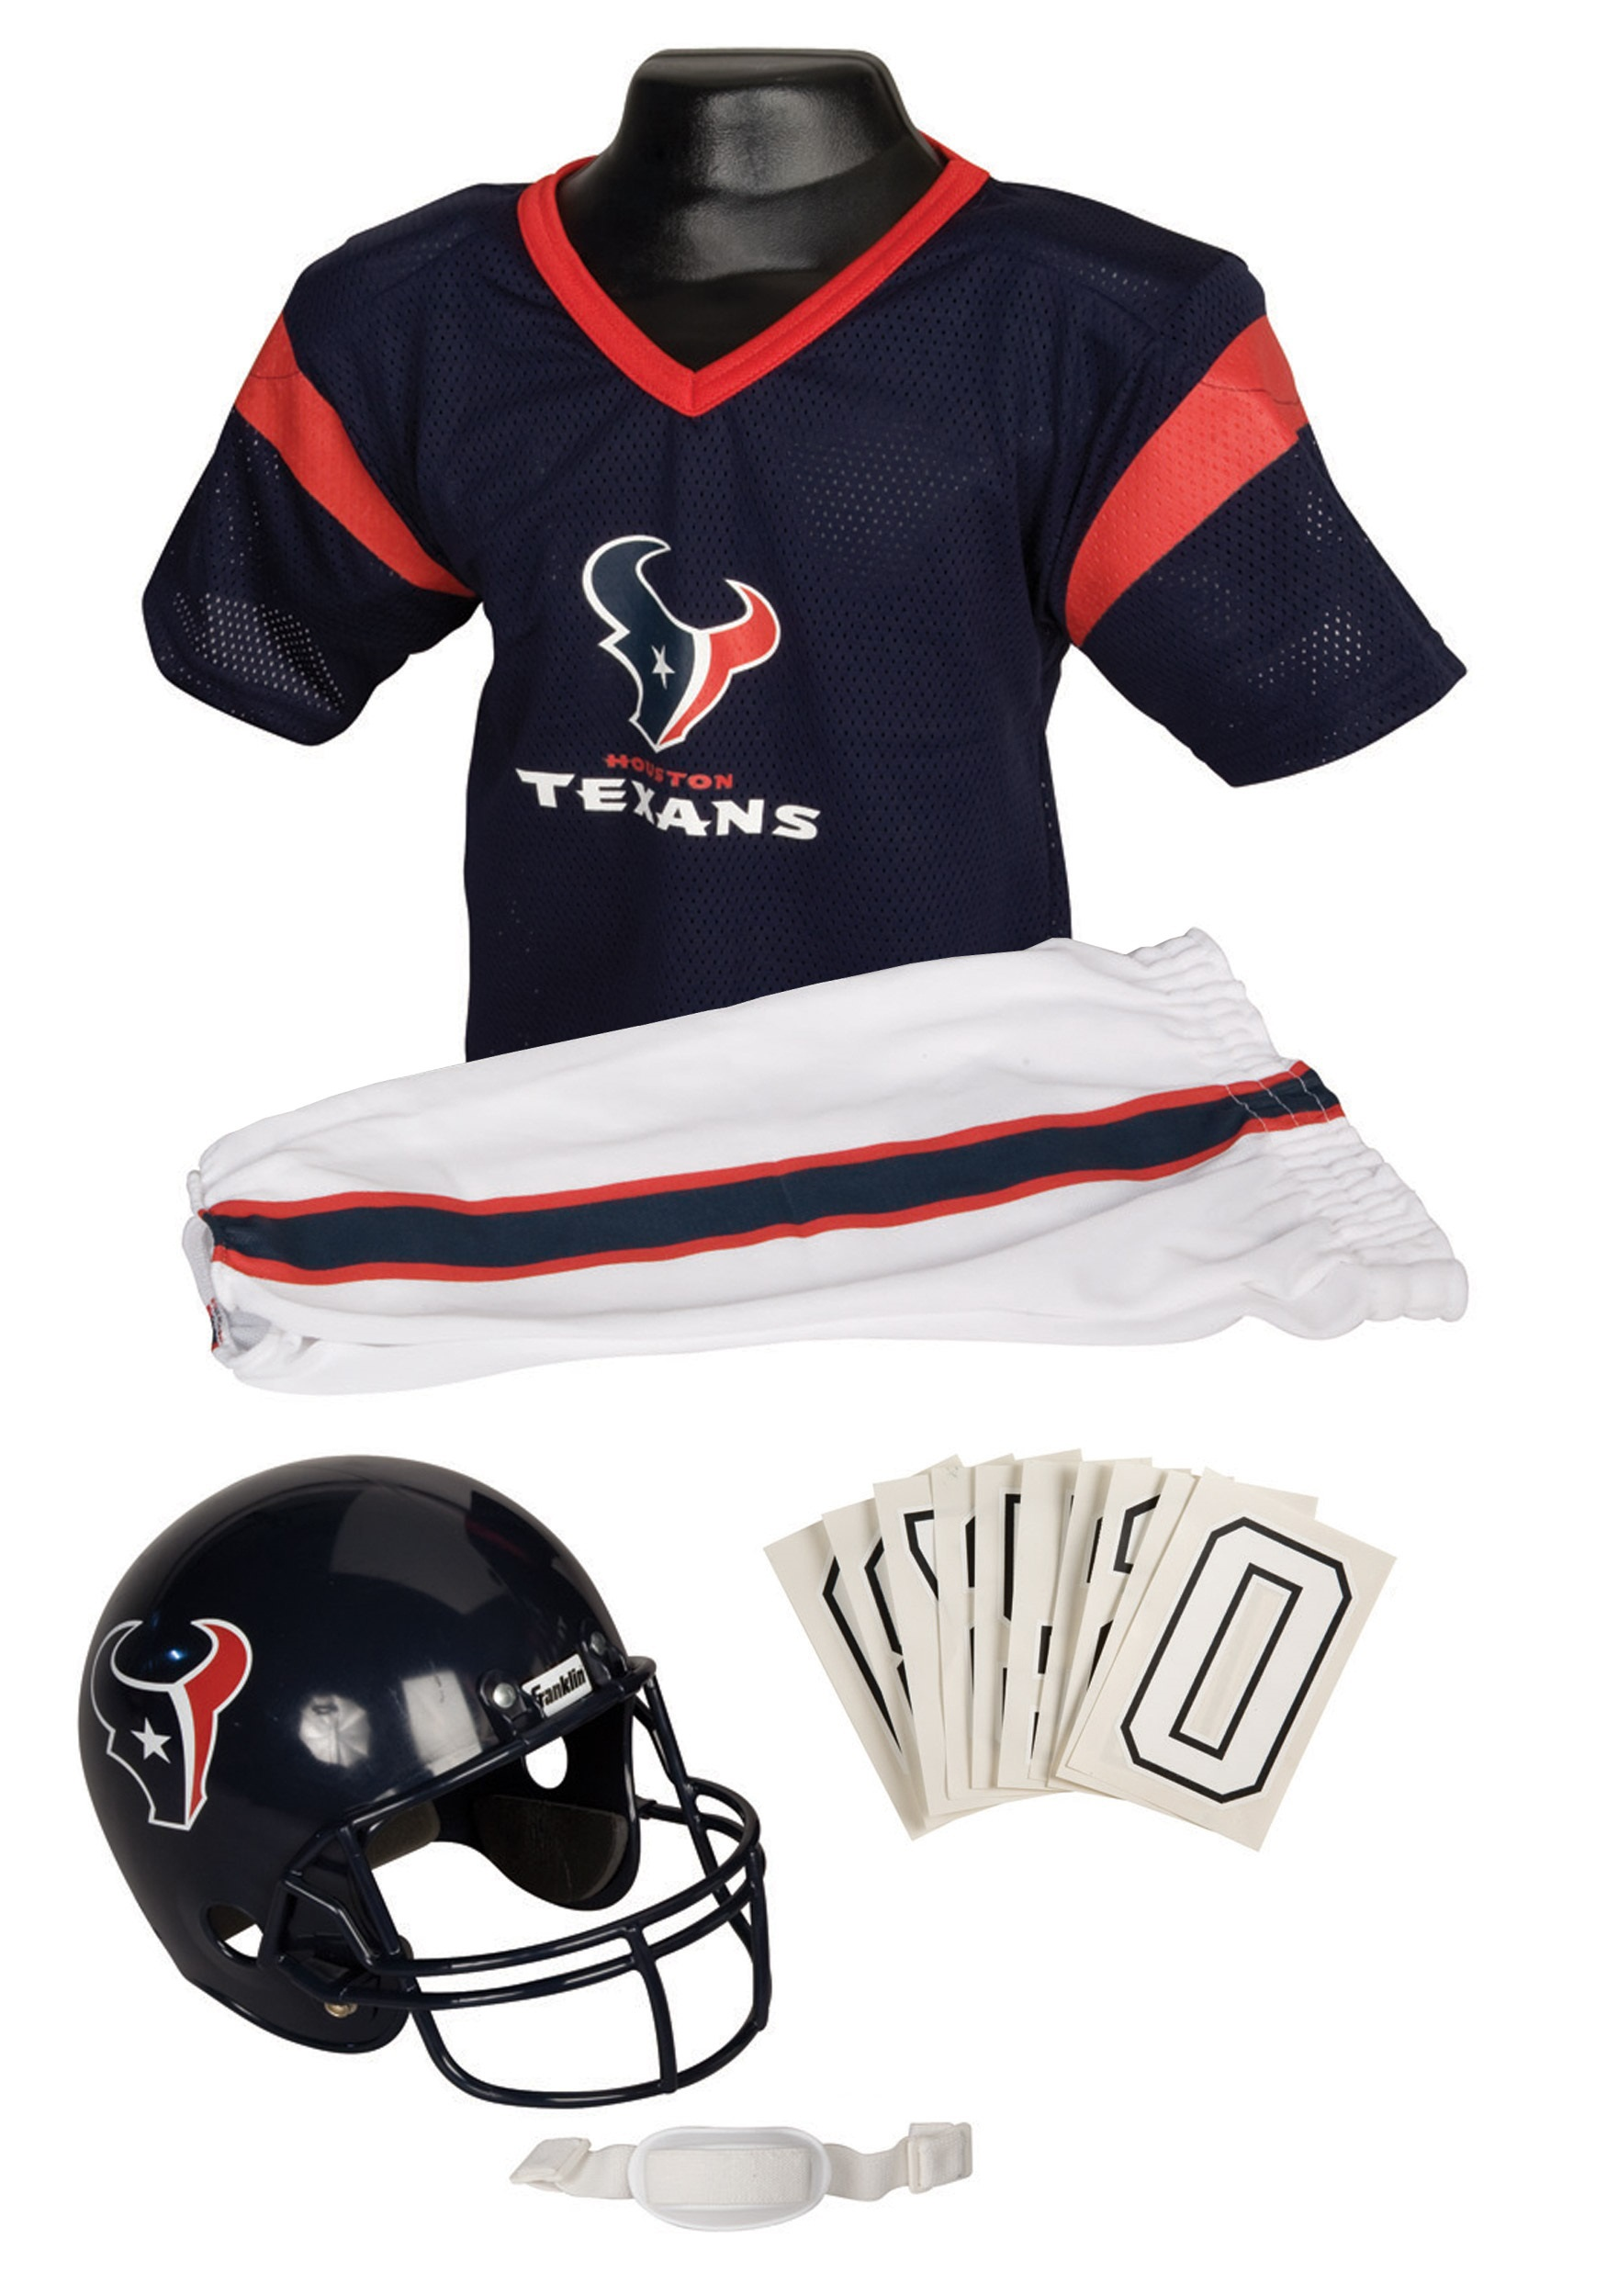 kids texans jersey